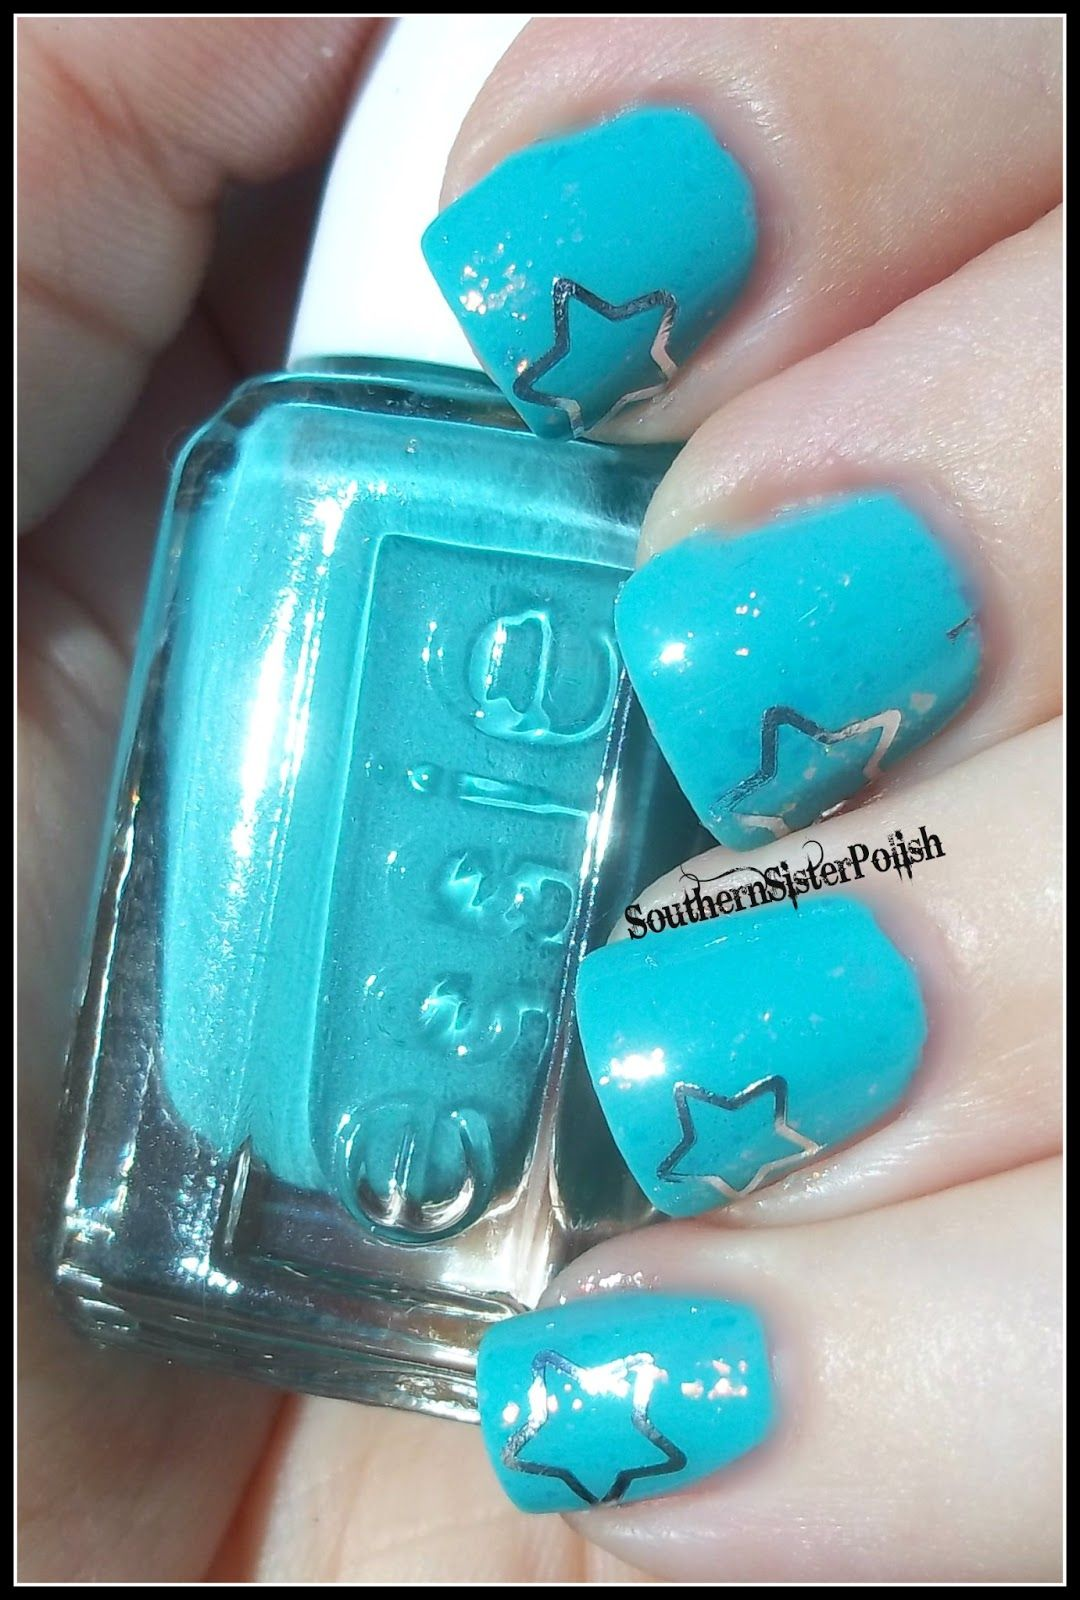 Southern sister polish water nail decals from born pretty